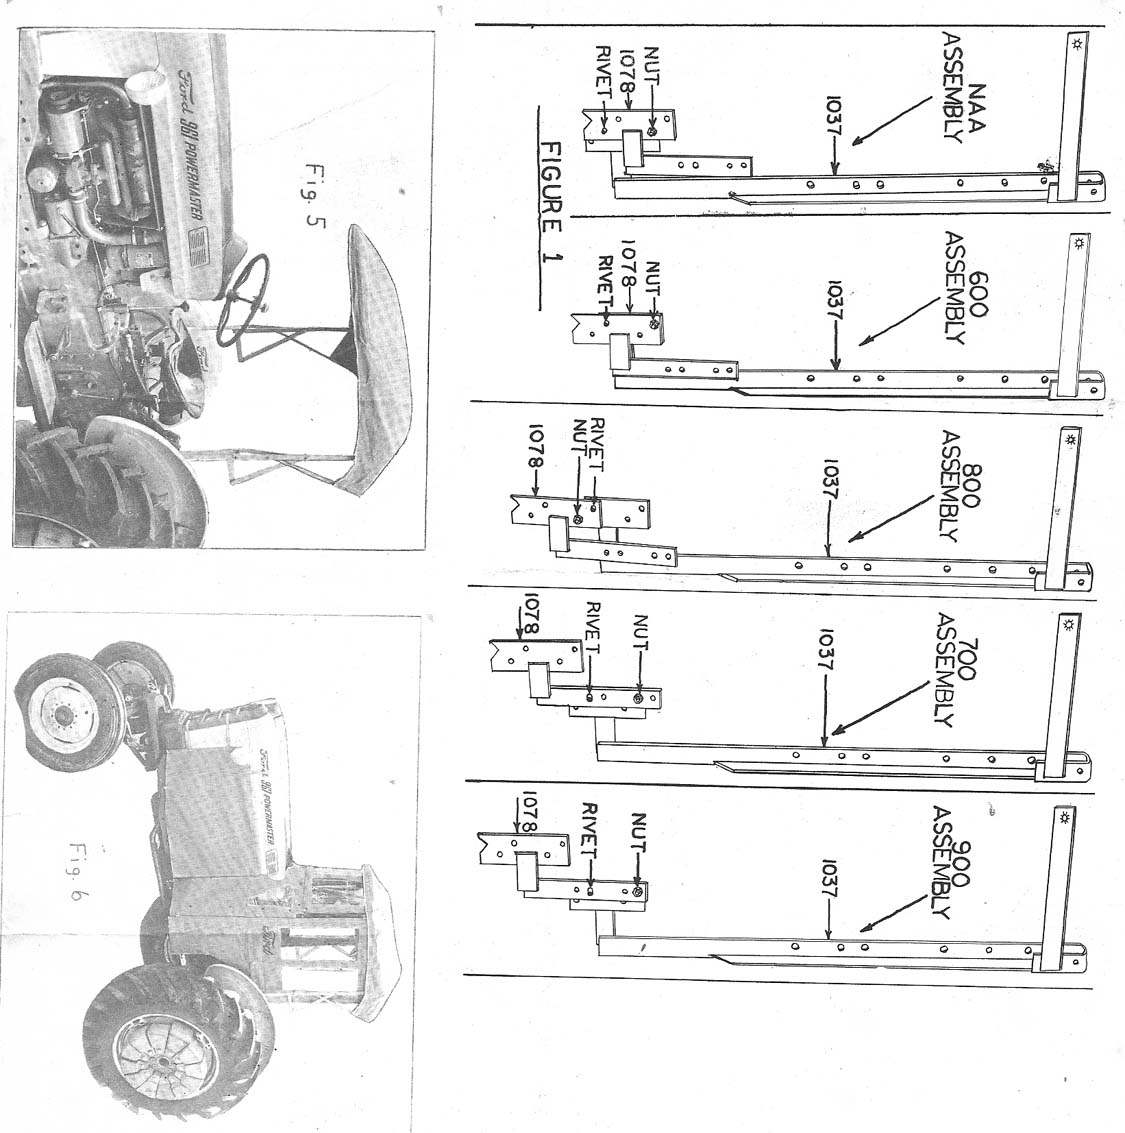 New Holland Tractor Wiring Diagram | Wiring Diagram Database on new holland tractor 70 hp, new holland tn55 tractor, new holland ts115a tractor, new holland workmaster 75 tractor, new holland tl100 tractor, new holland t7040 tractor, new holland tc35 tractor, new holland tm135 tractor, new holland tl90a tractor, new holland tc45 tractor, new holland ts90 tractor,